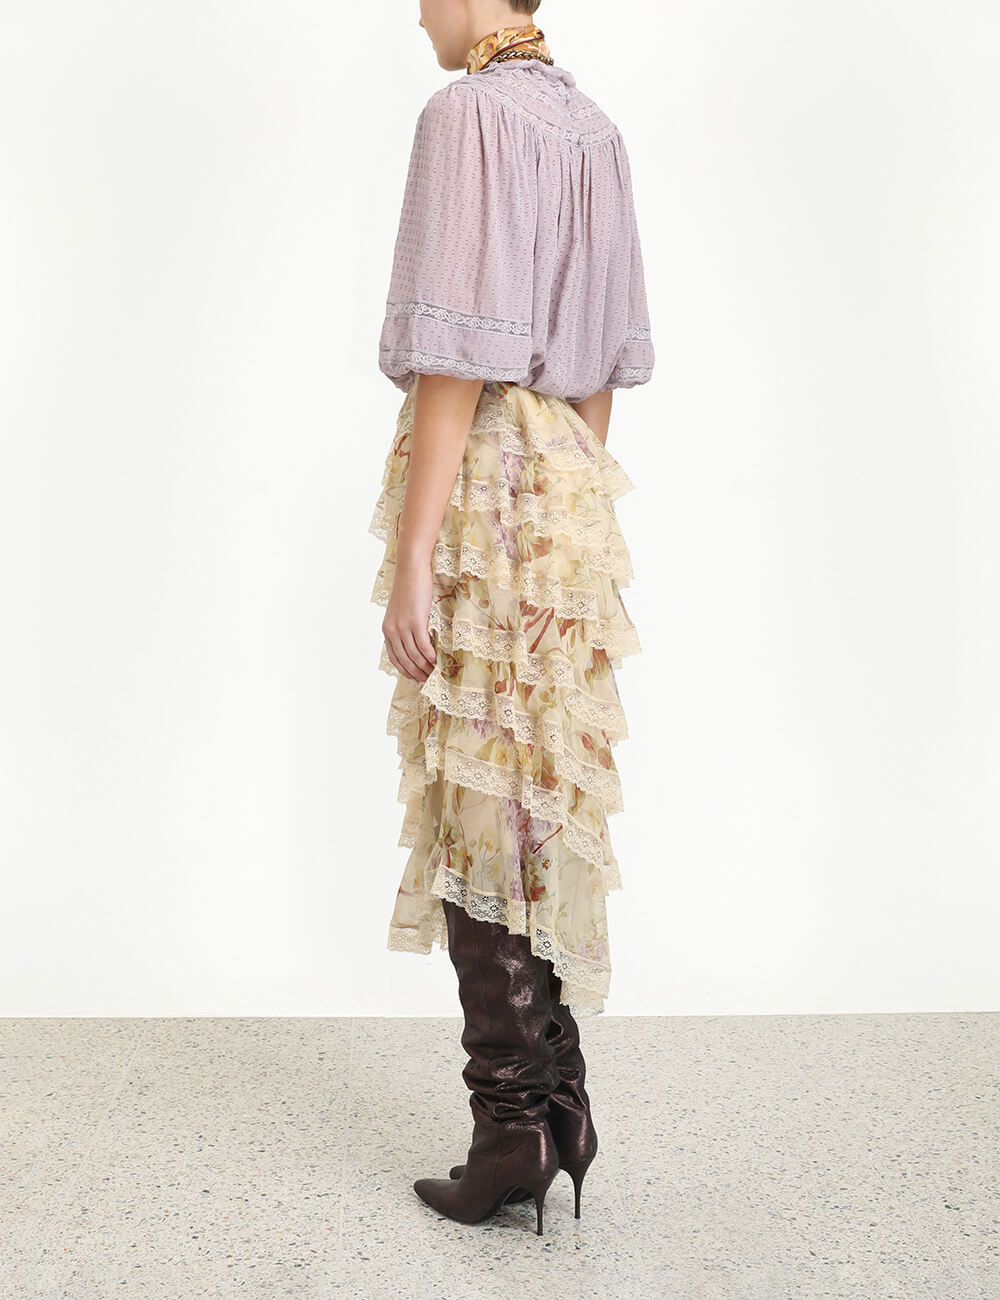 Sabotage Tiered Lace Skirt